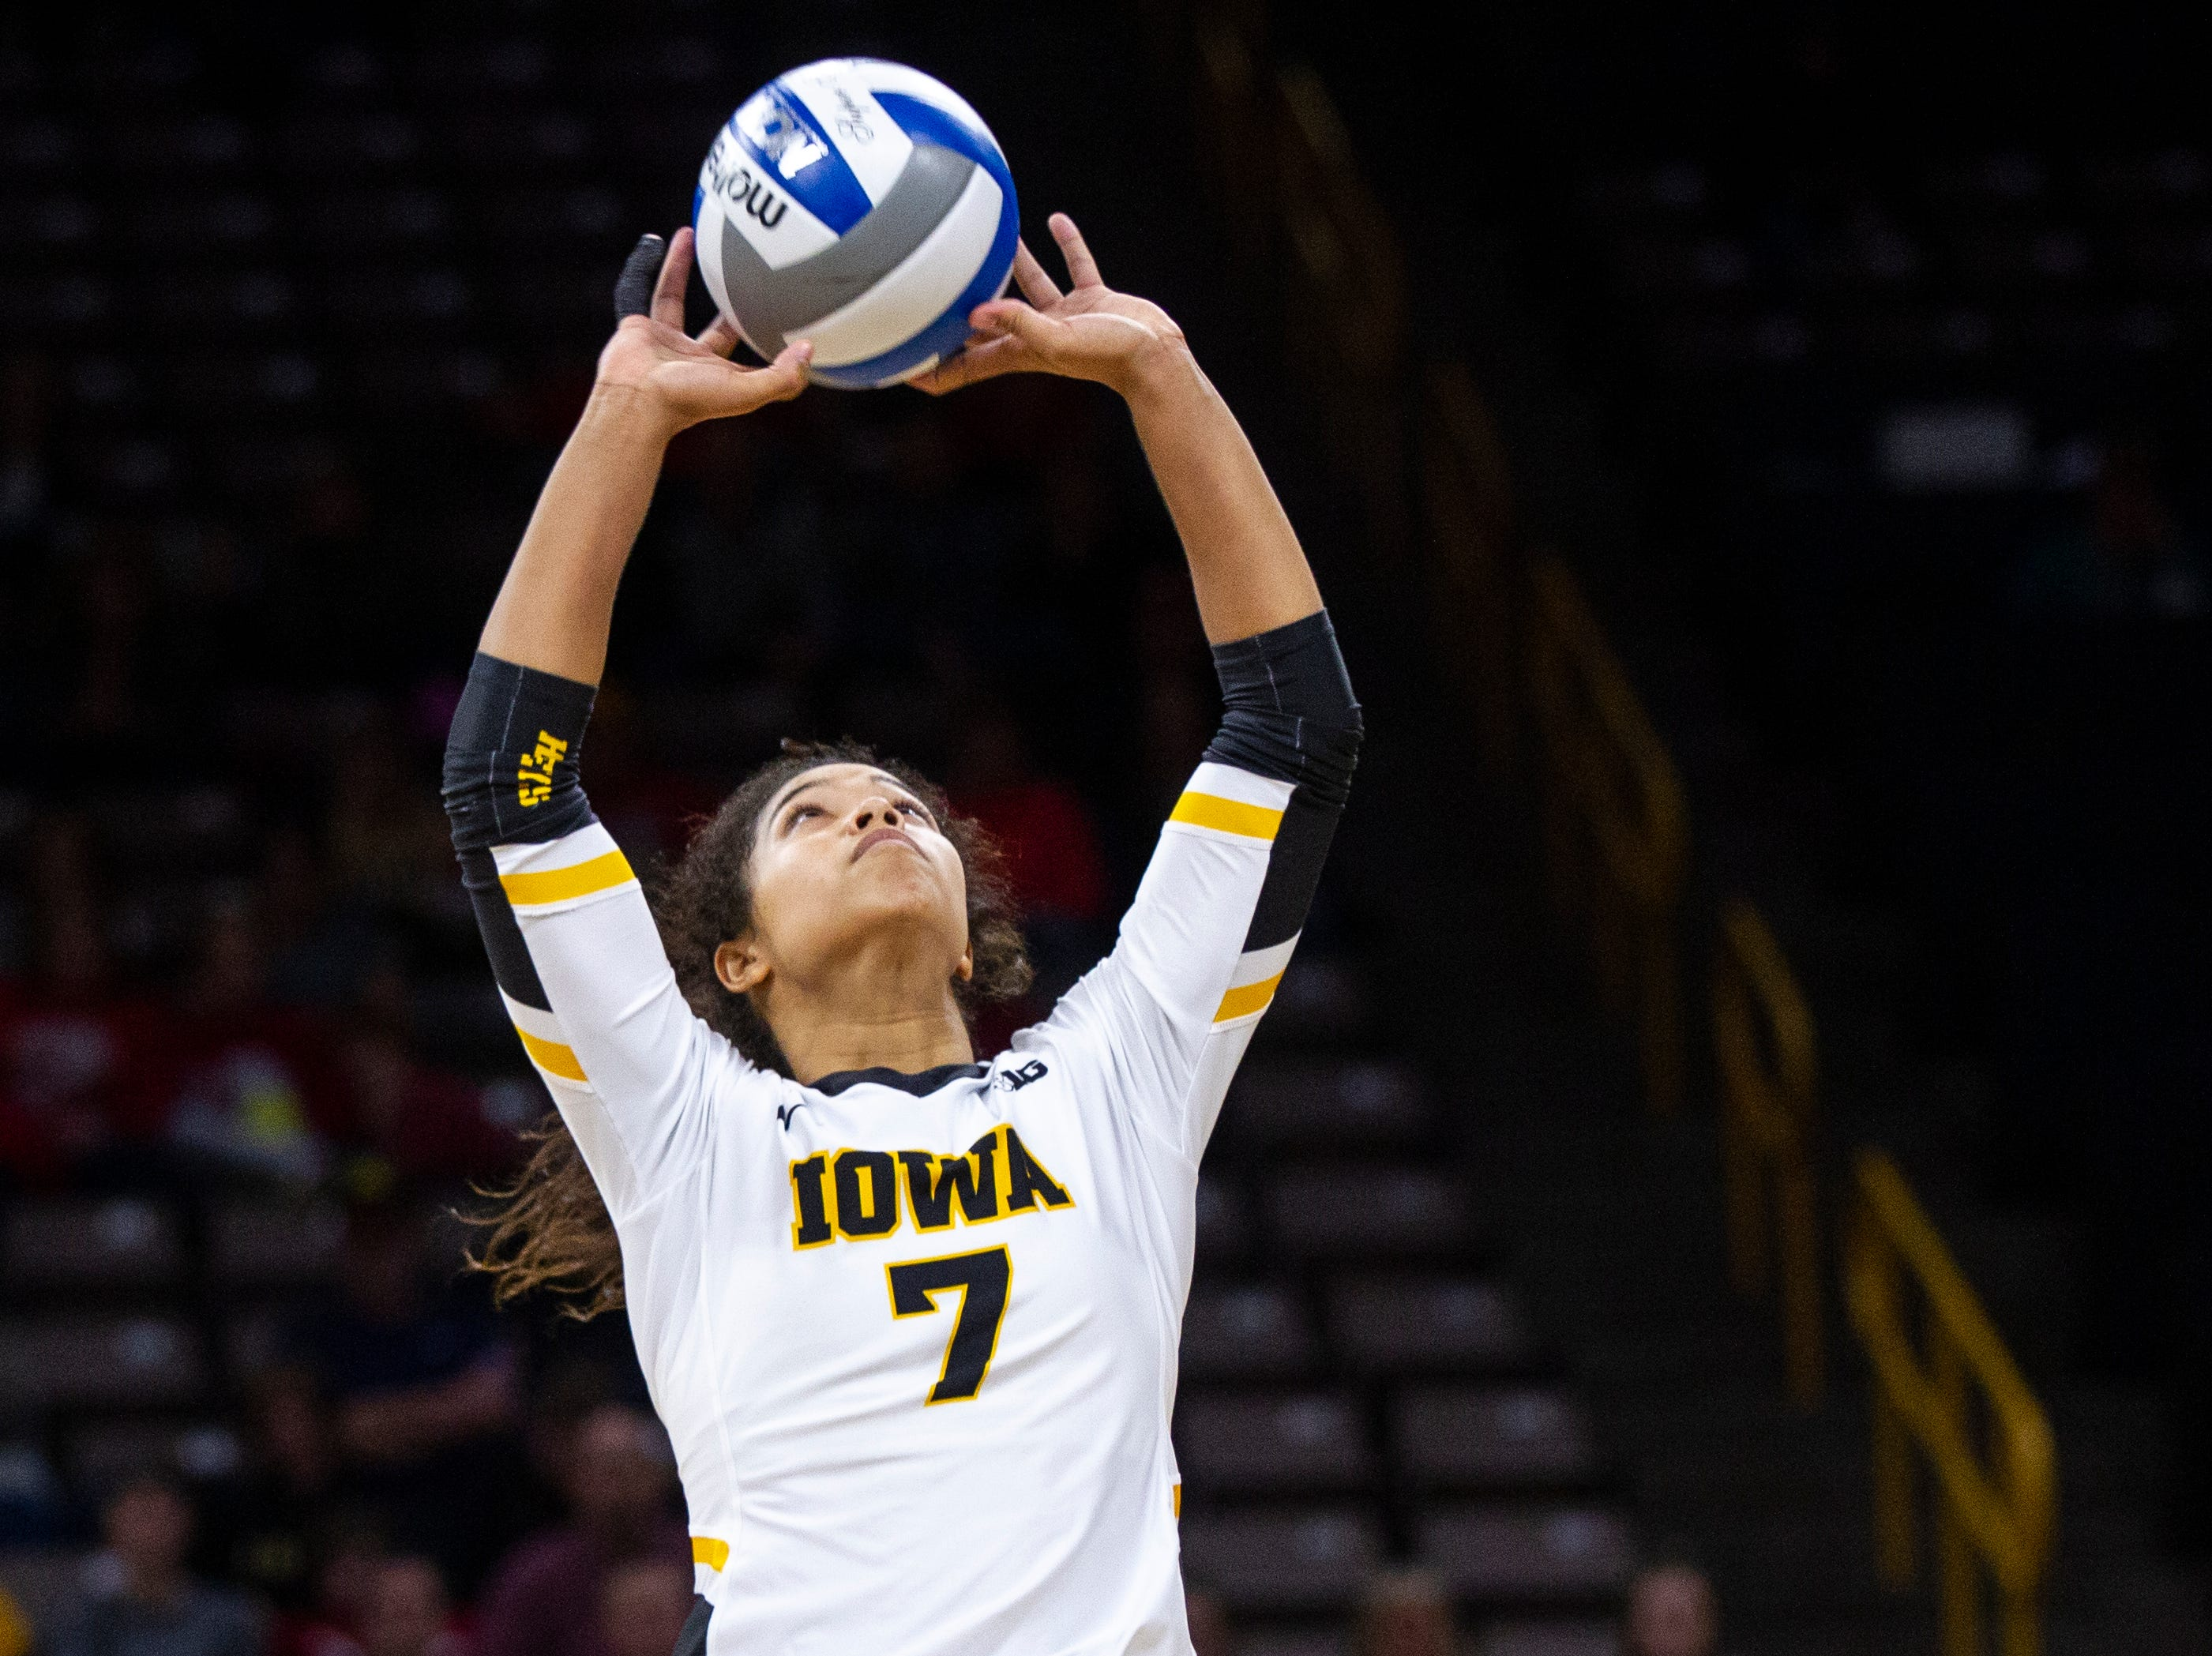 Iowa setter Brie Orr (7) sets a ball during an NCAA volleyball game on Wednesday, Nov. 7, 2018, at Carver-Hawkeye Arena in Iowa City.